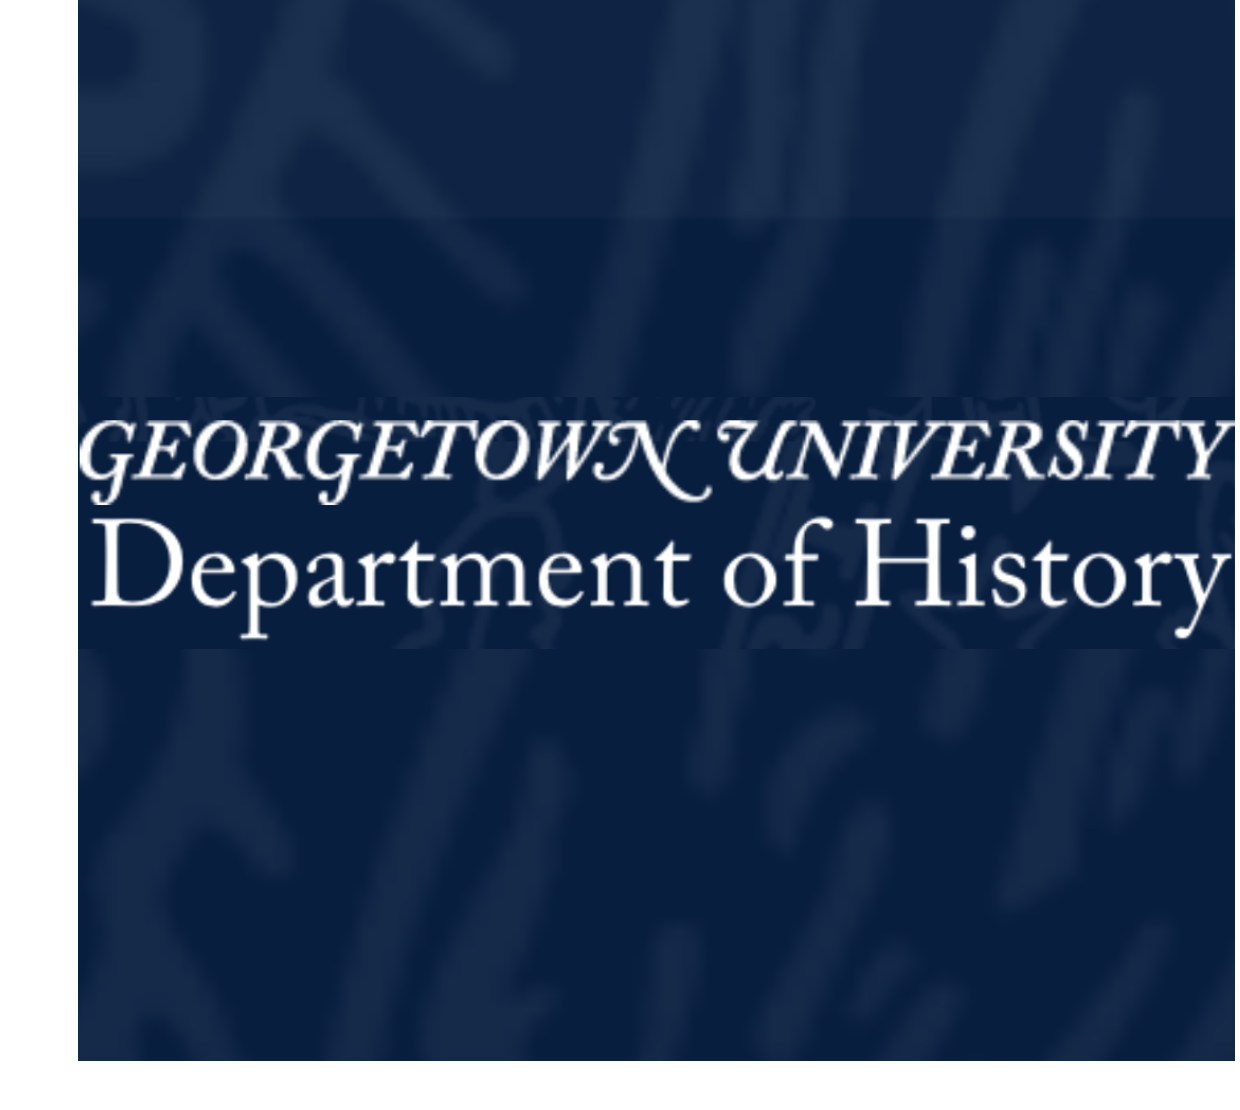 Georgetown Department of History.png